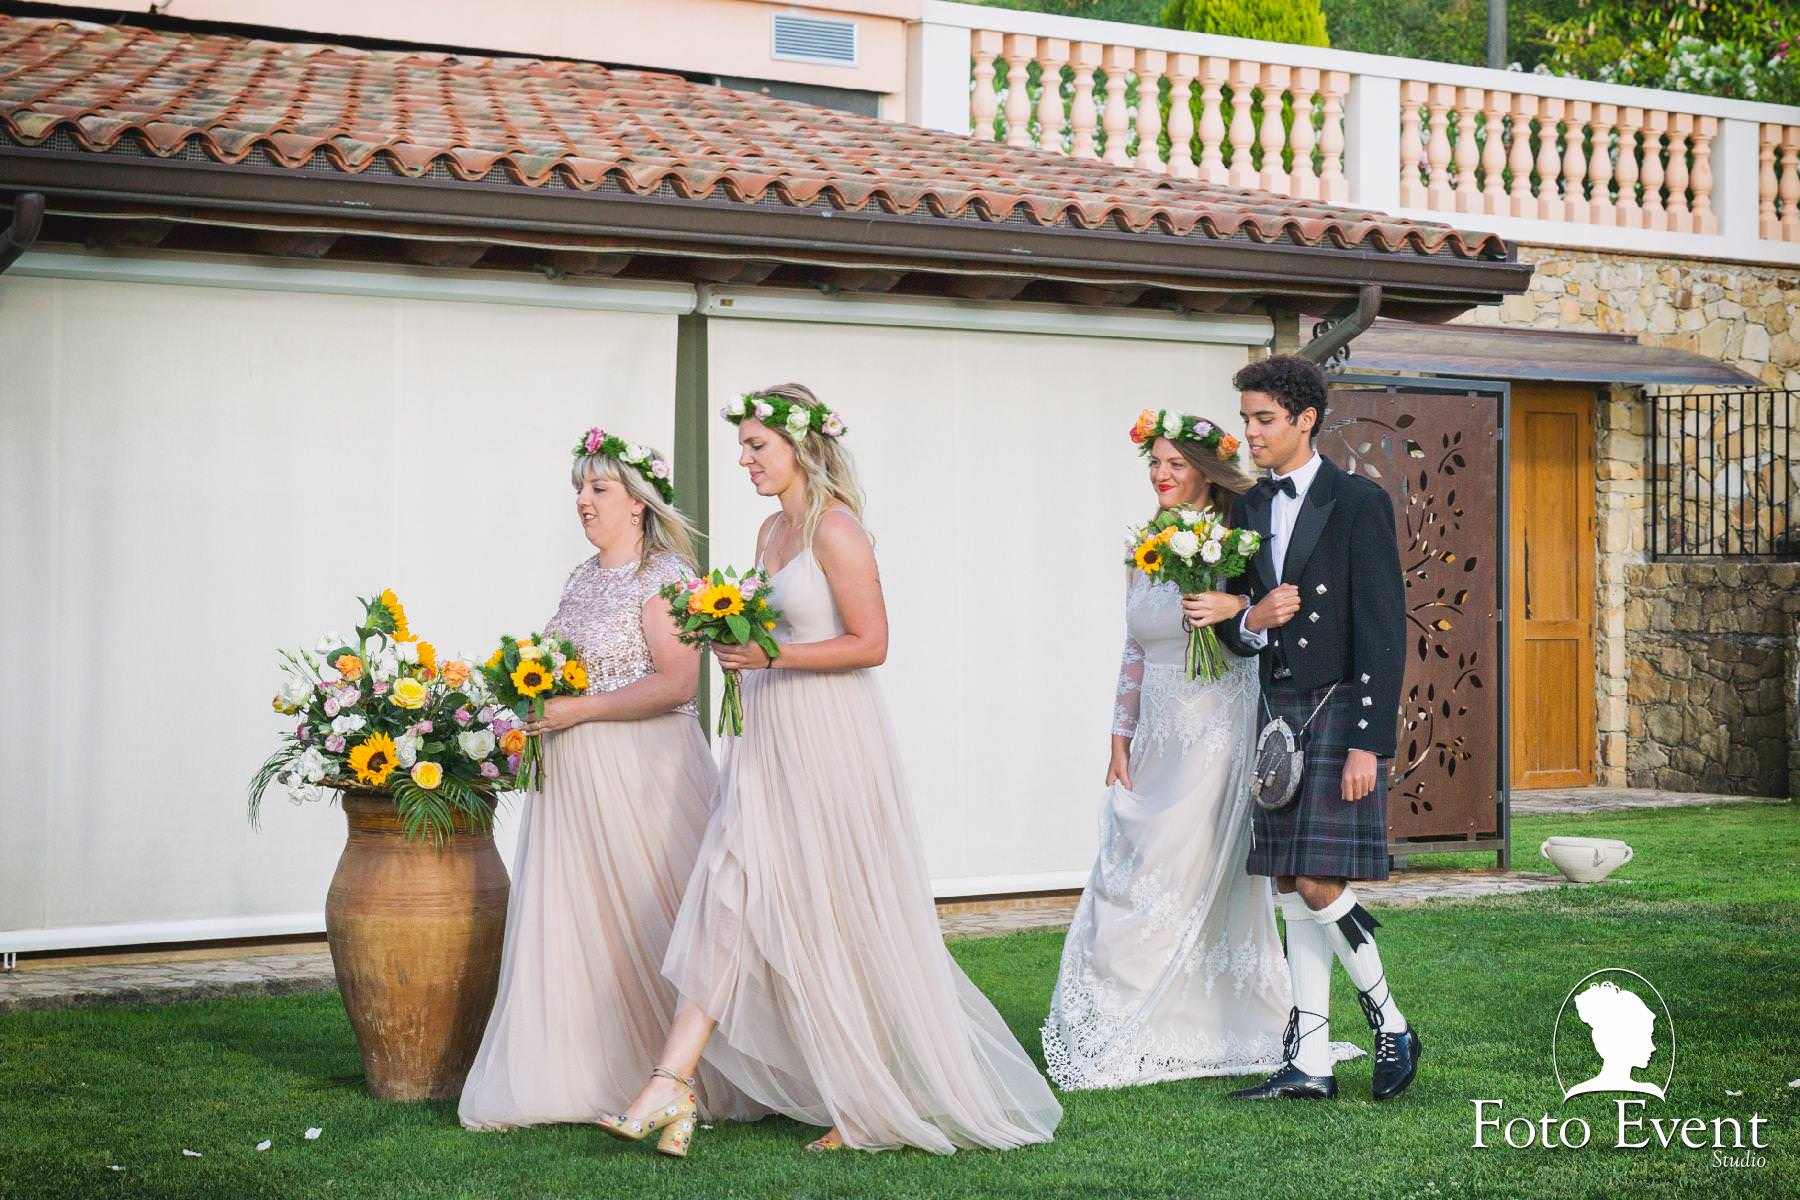 Destination wedding sicily Elisa Bellanti Foto Event Studio 221